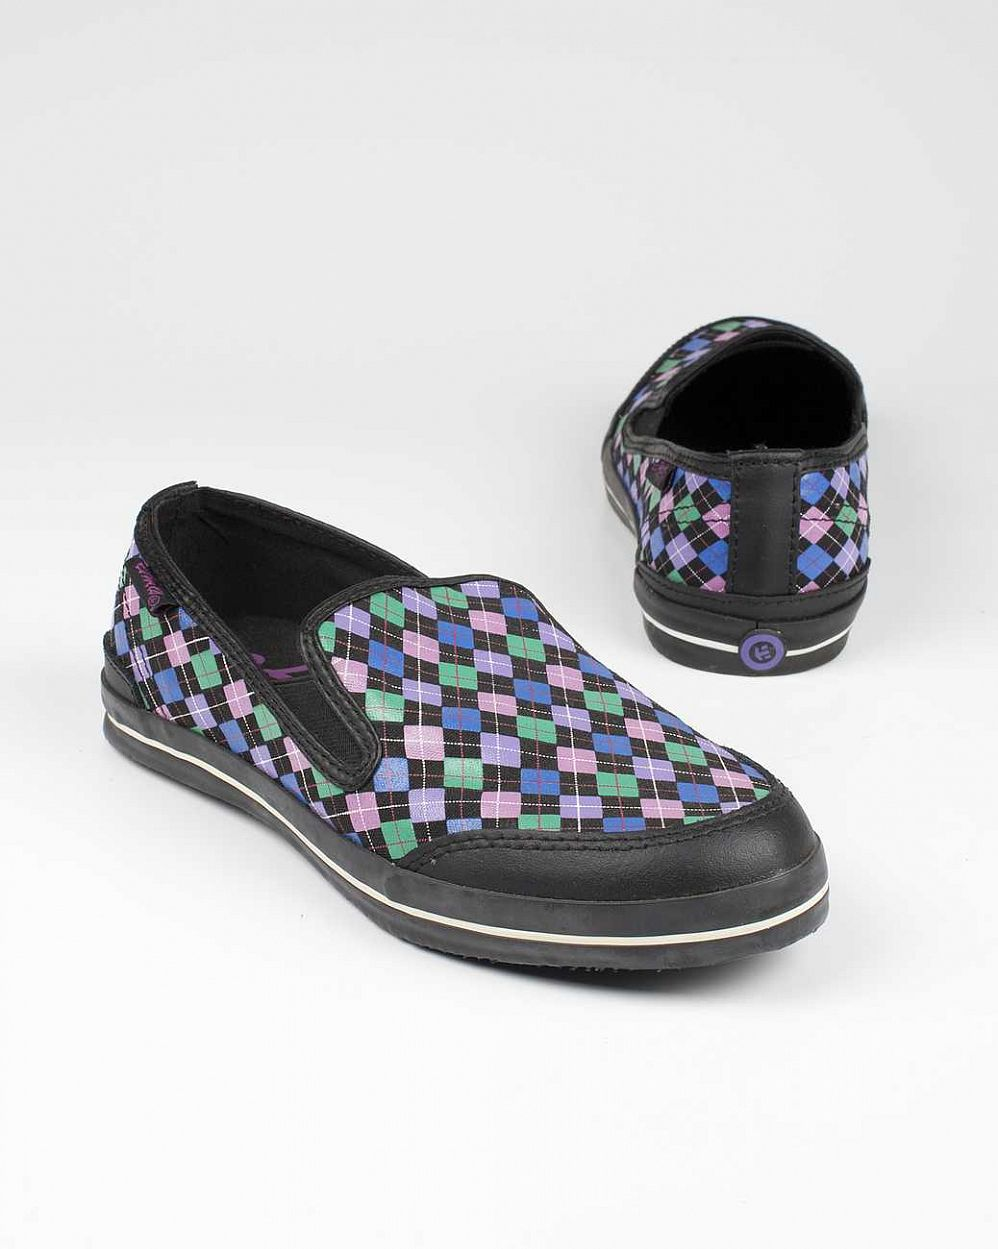 Слипоны Etnies Chambosa WS black purple отзывы